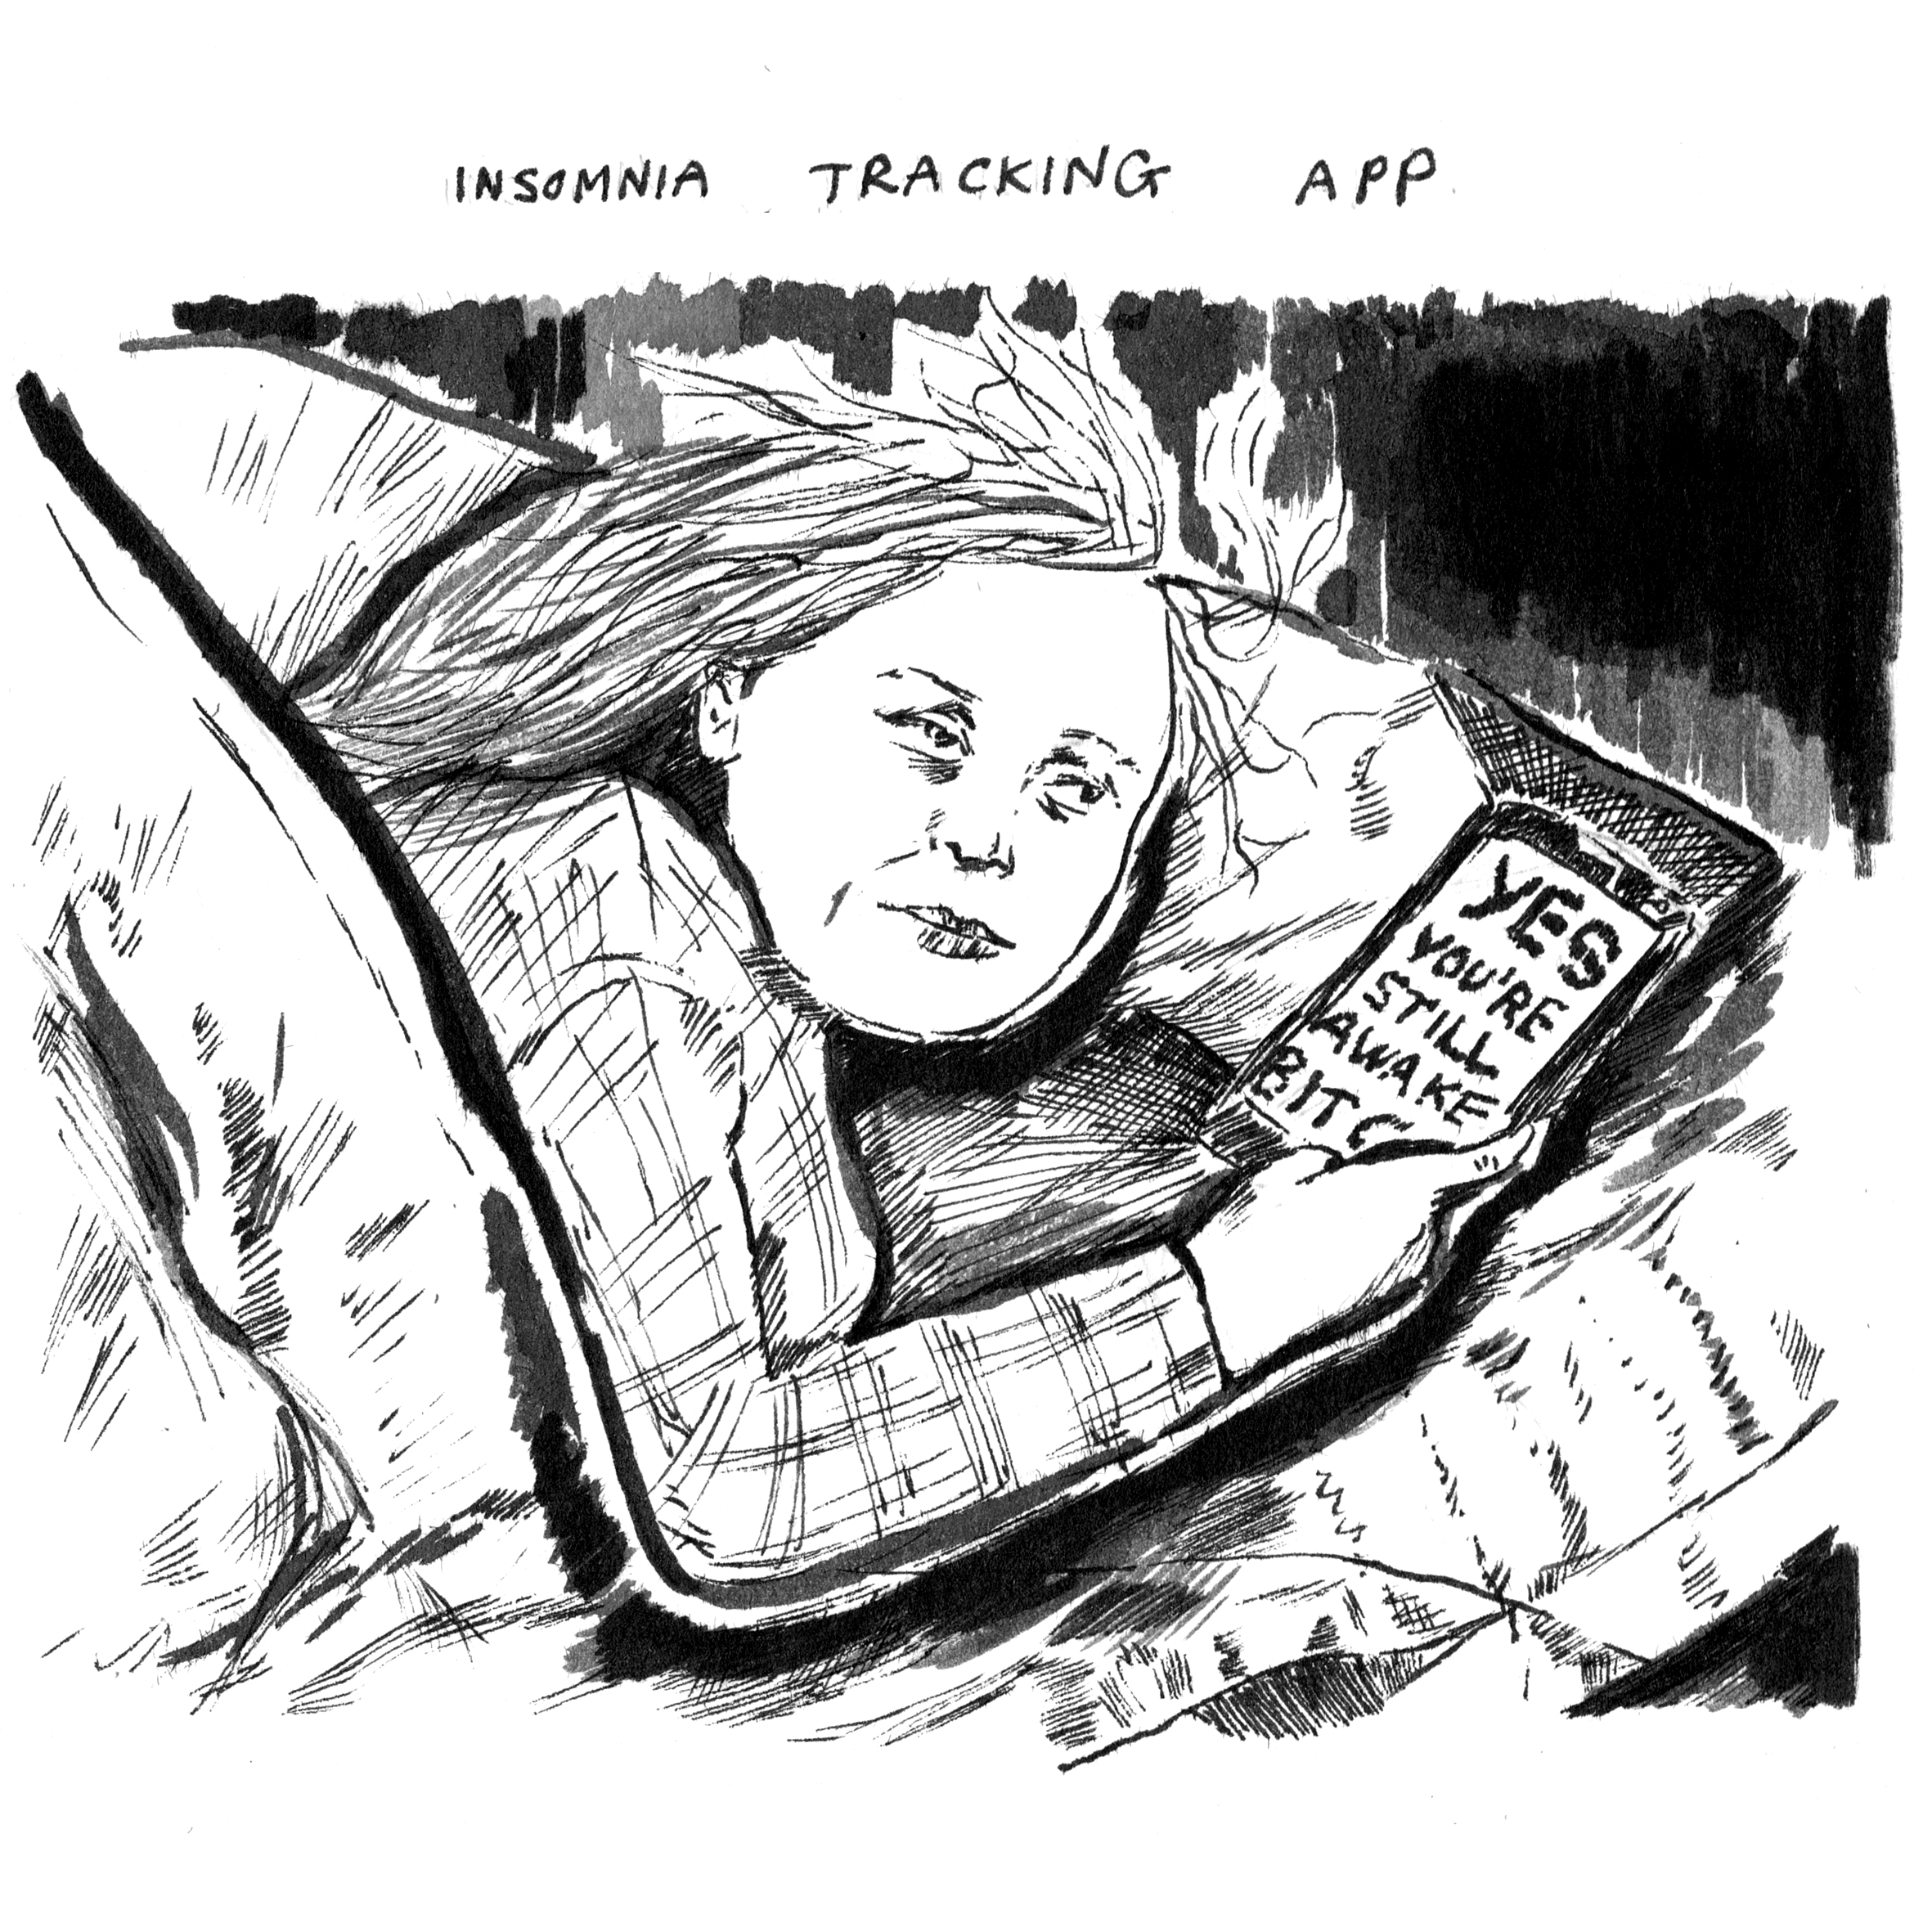 Comic titled 'Insomnia Tracking App', where a phone tells the user, 'Yes you're still awake bitch'